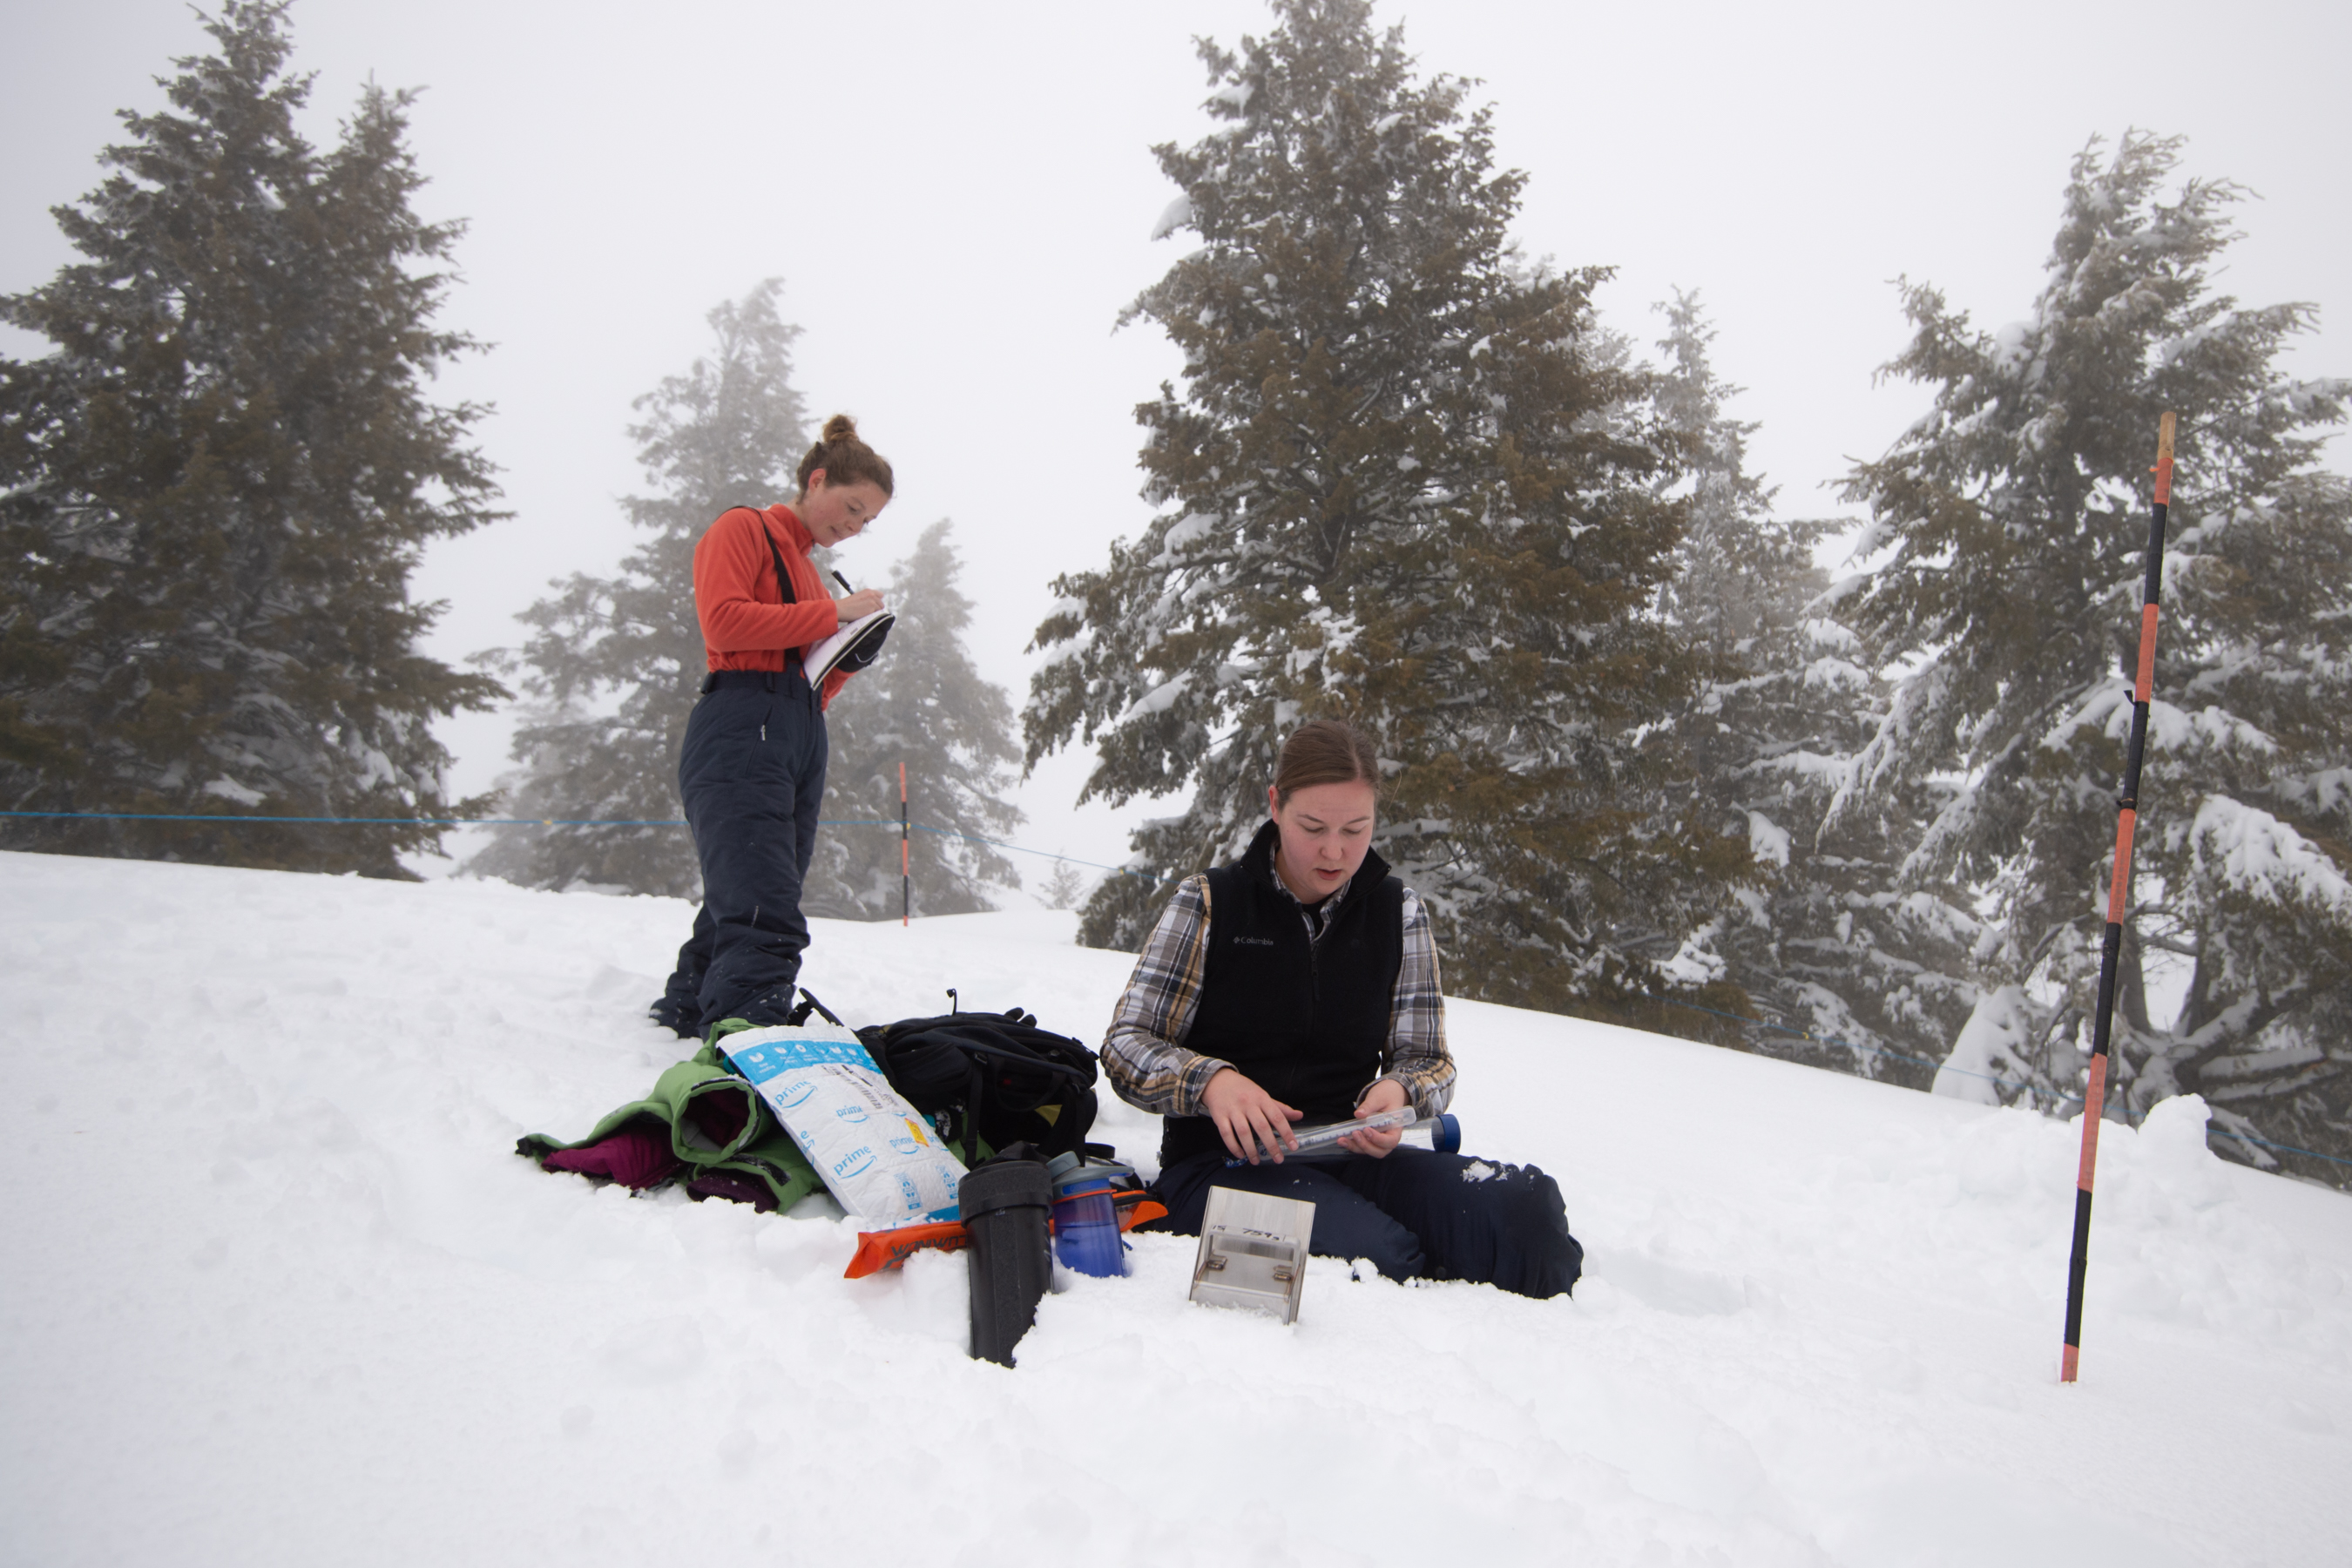 https://www.boisestate.edu/news/2020/02/24/students-support-nasa-snowex-research-gain-first-hand-experience/